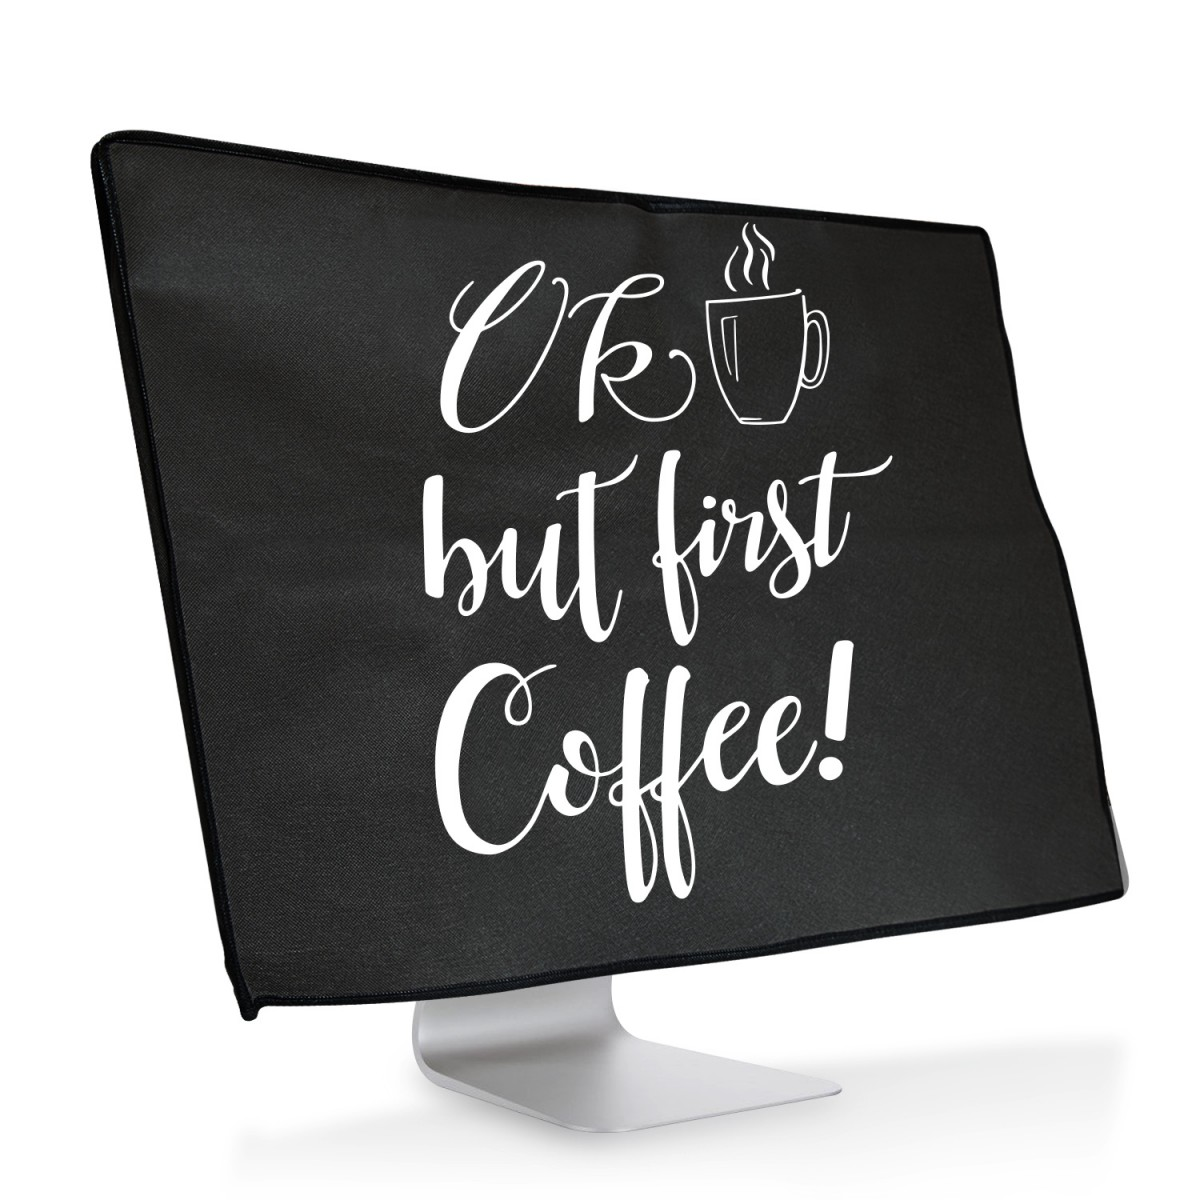 Ochranný návlek OK but first coffee! na iMac 21,5""